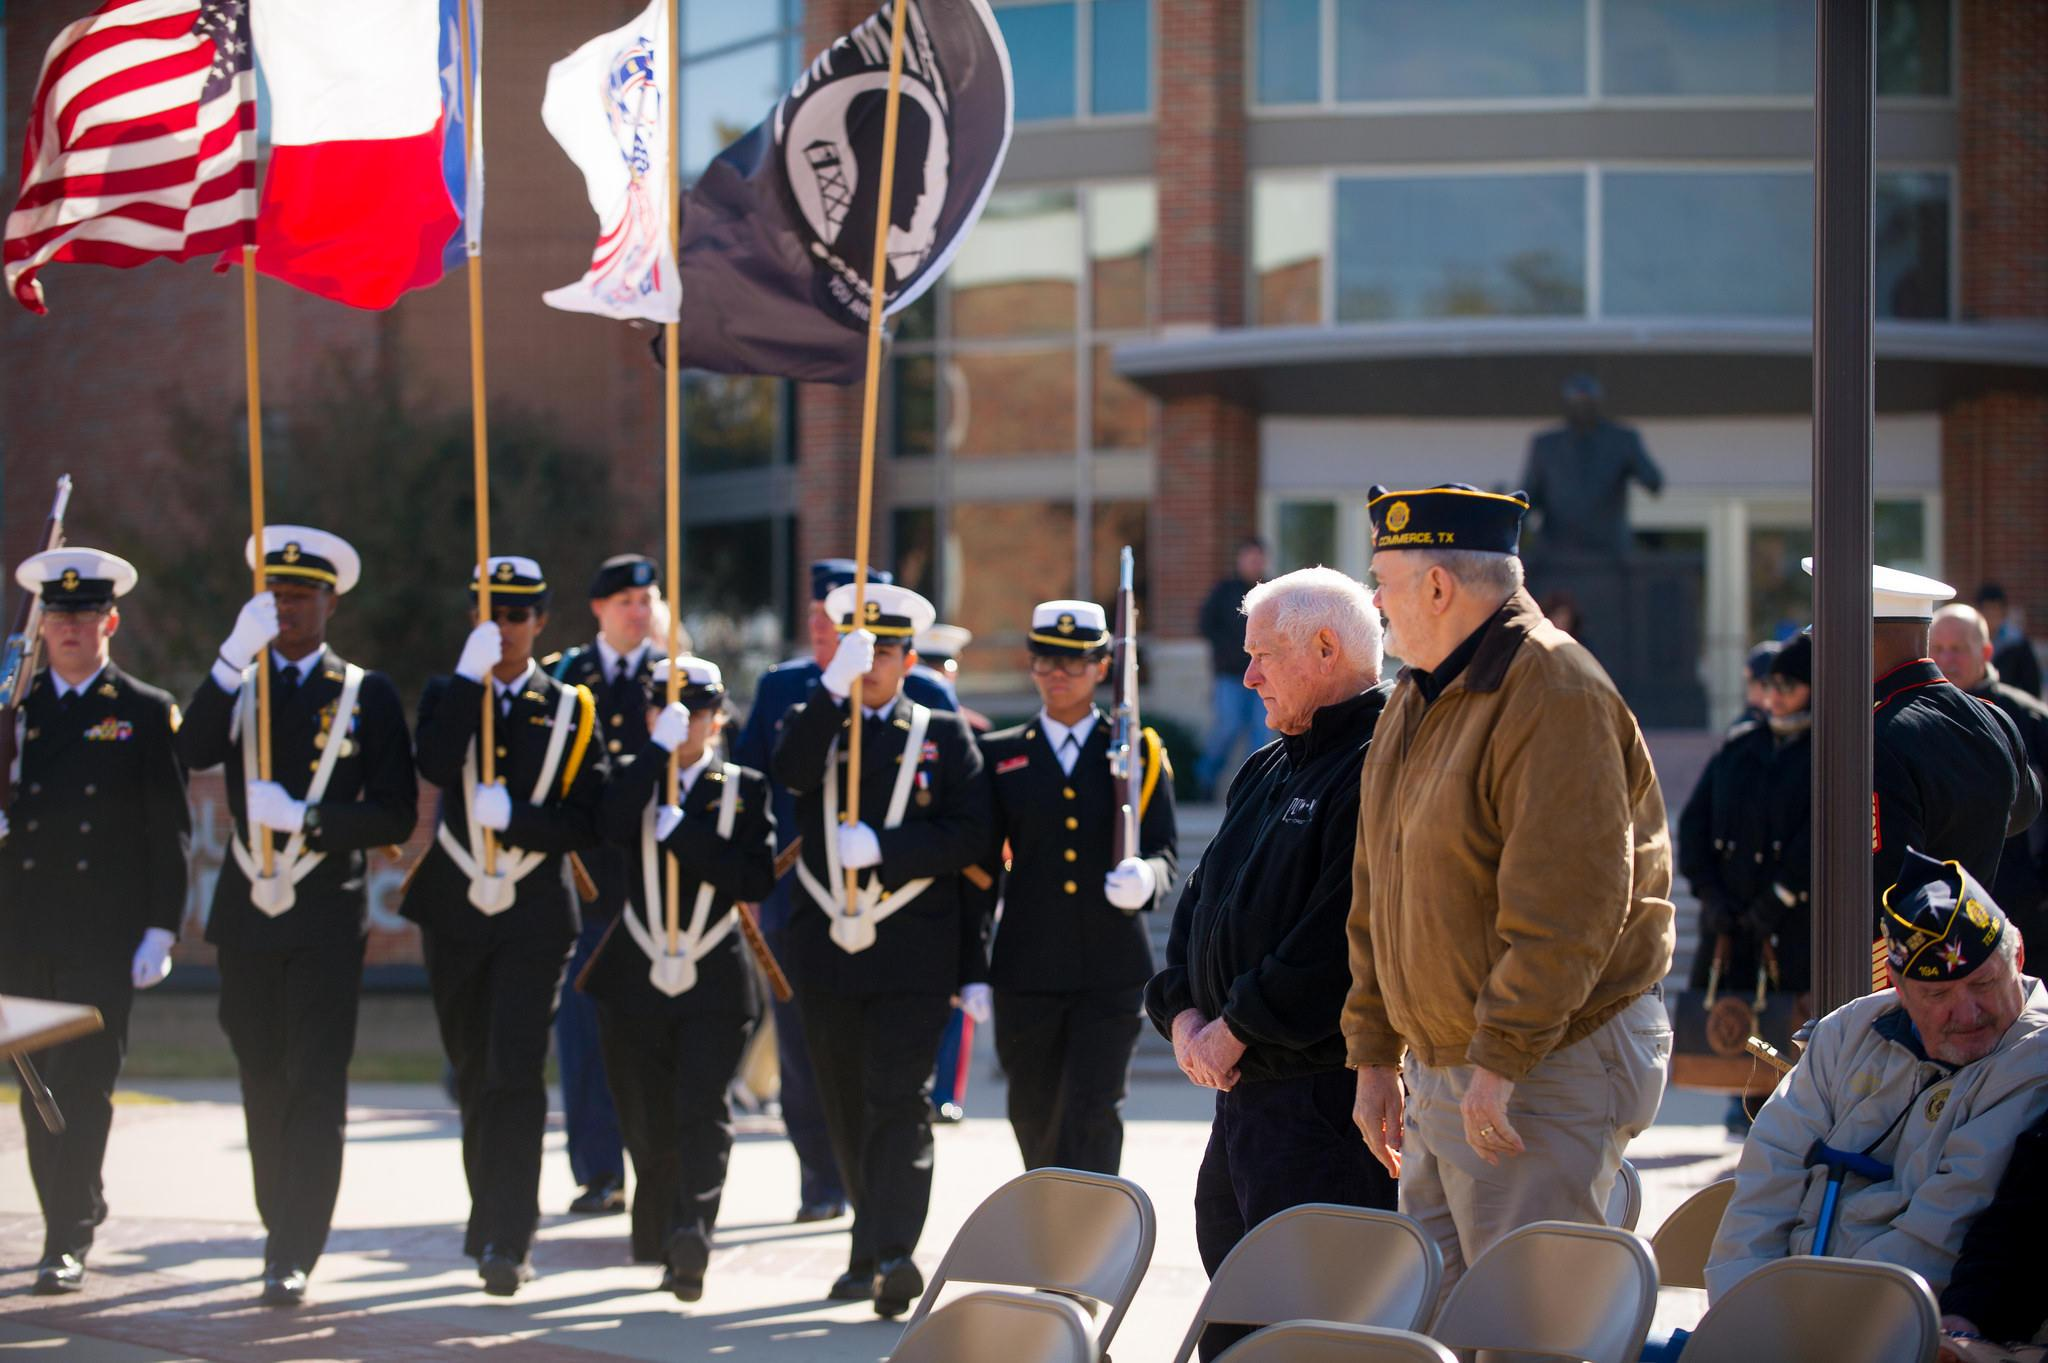 Closing Ceremony for 2014's Veterans Vigil at A&M-Commerce